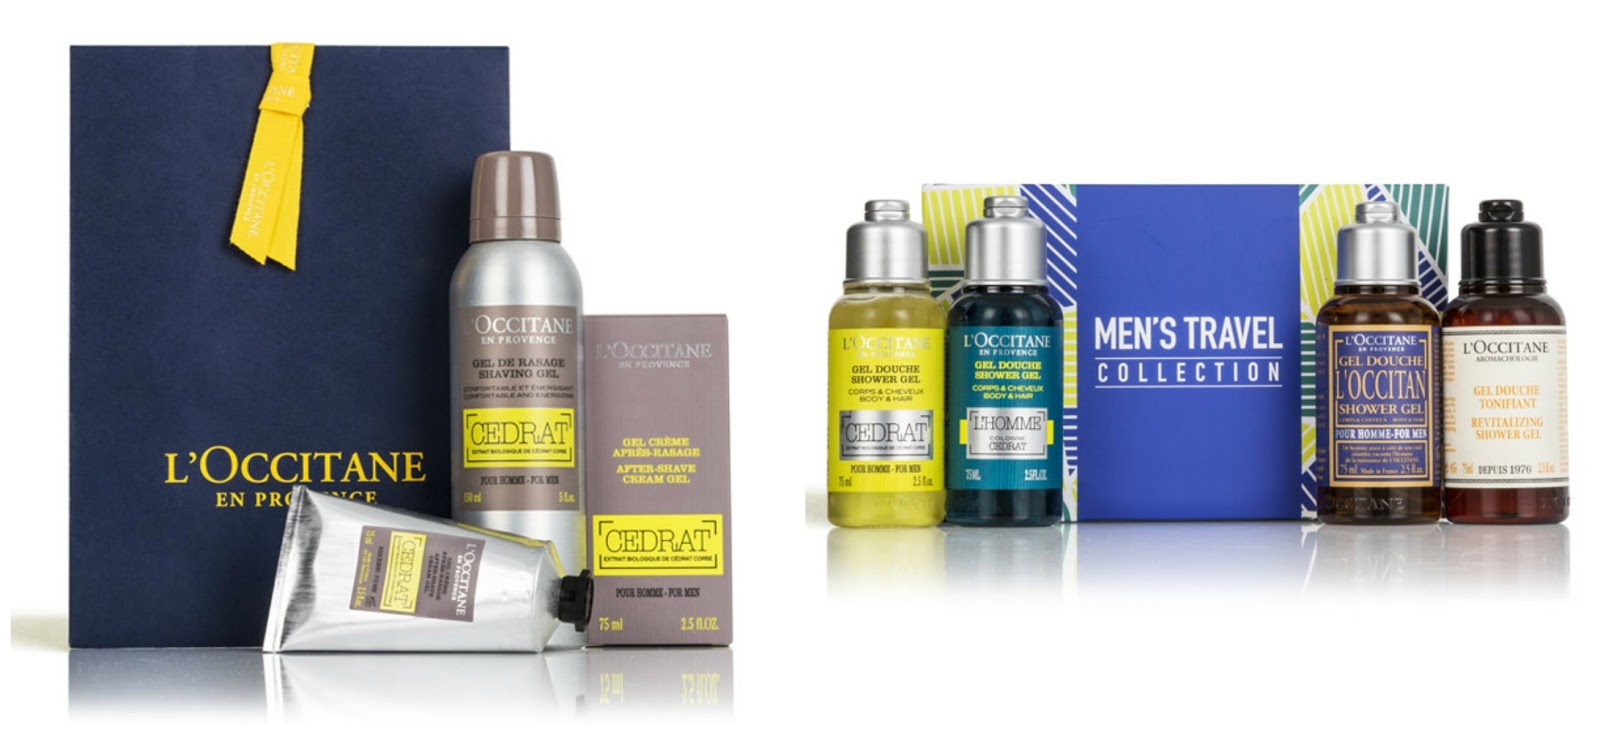 l'occitane summer gift set guide for all budgets men's gift sets cedar shaving duo travel collection